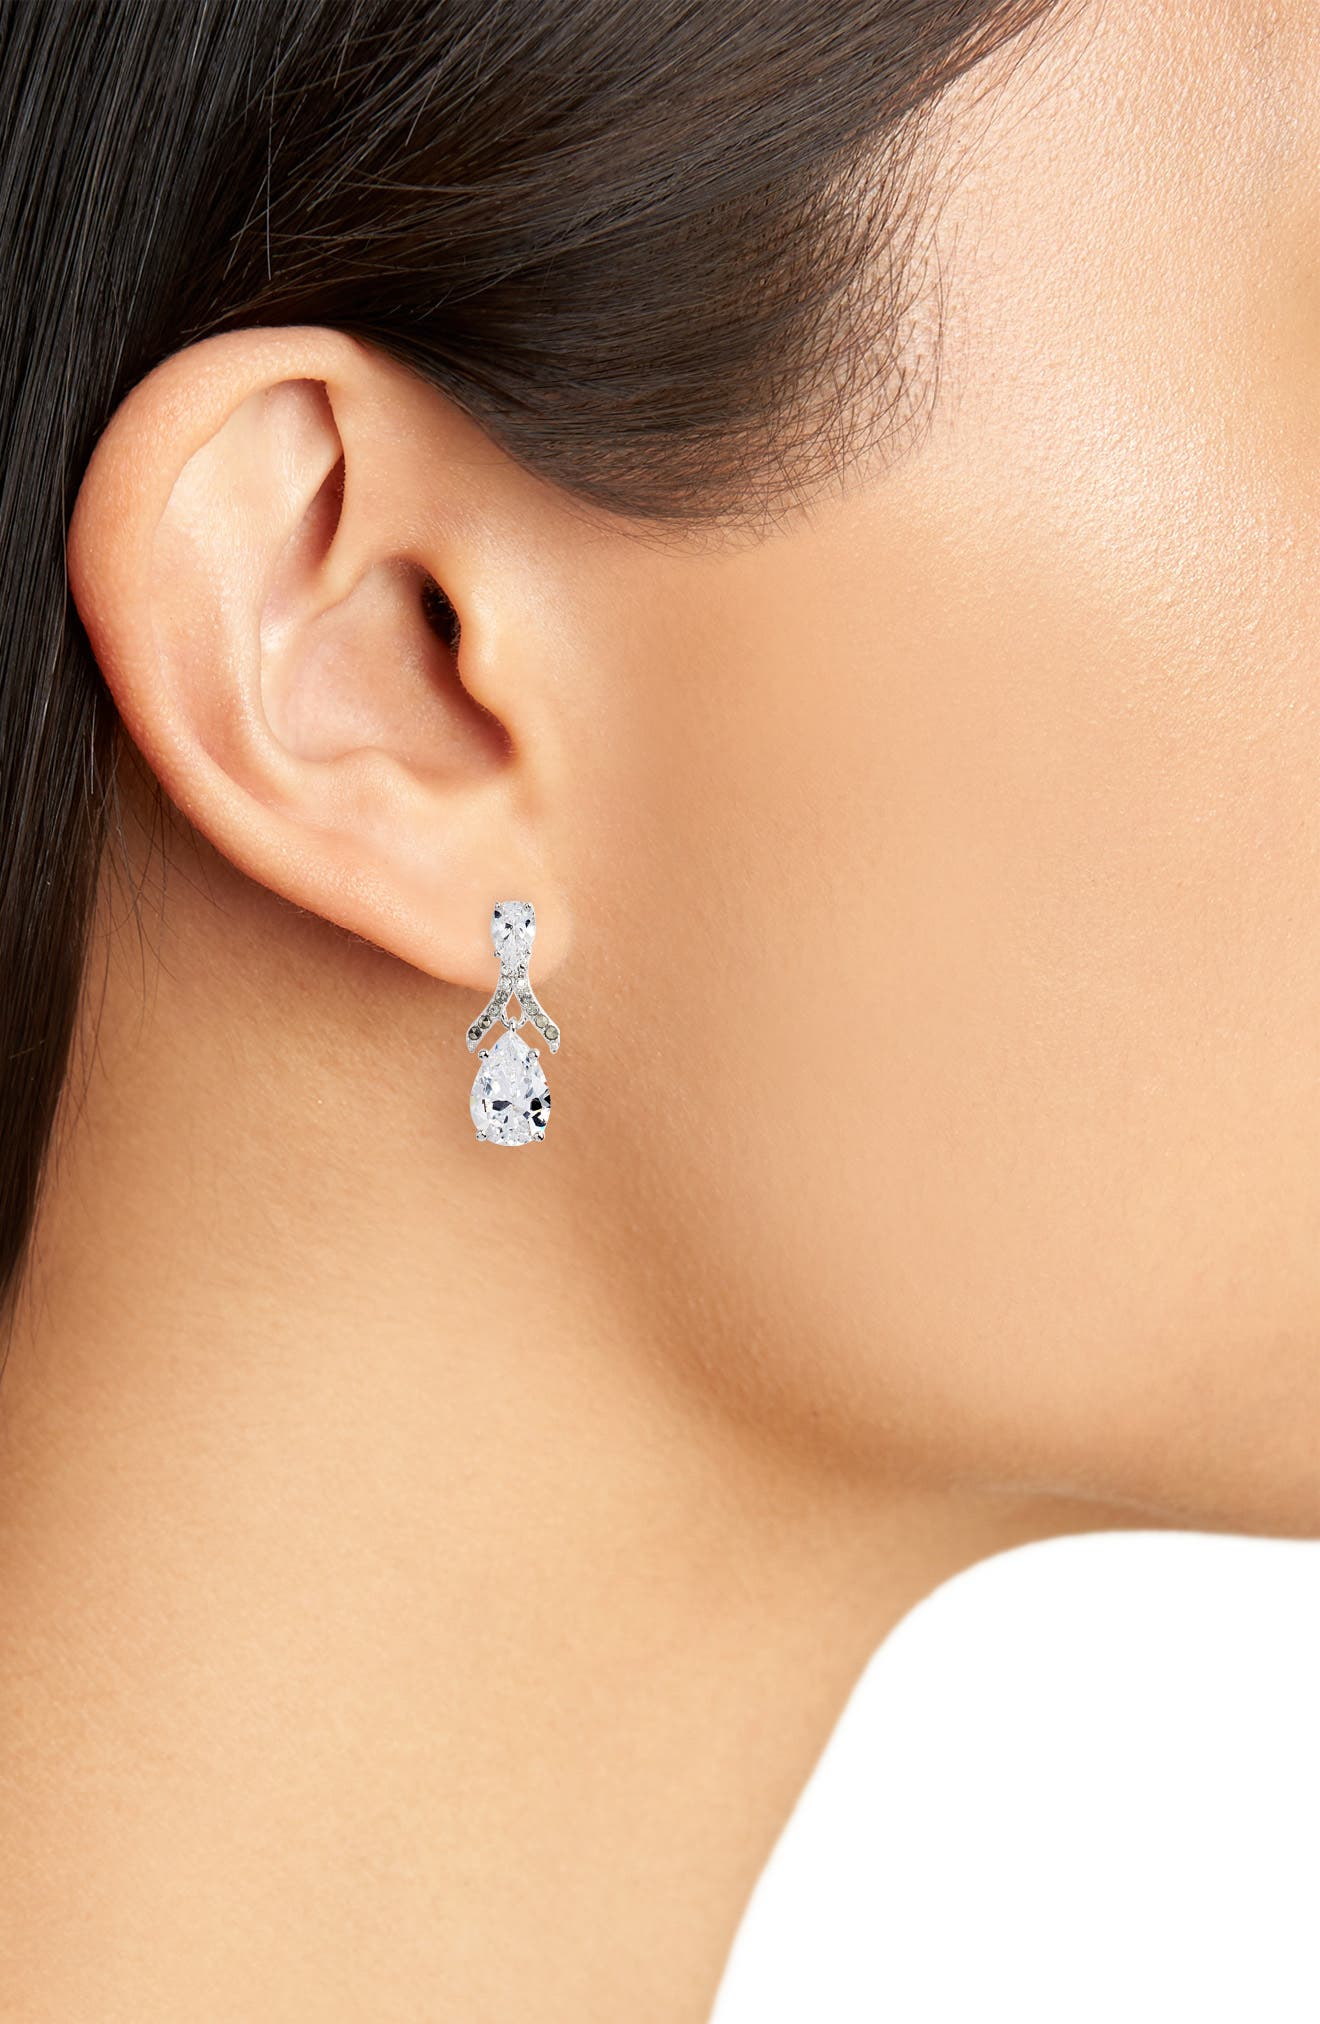 Cubic Zirconia Drop Earrings,                             Alternate thumbnail 2, color,                             040